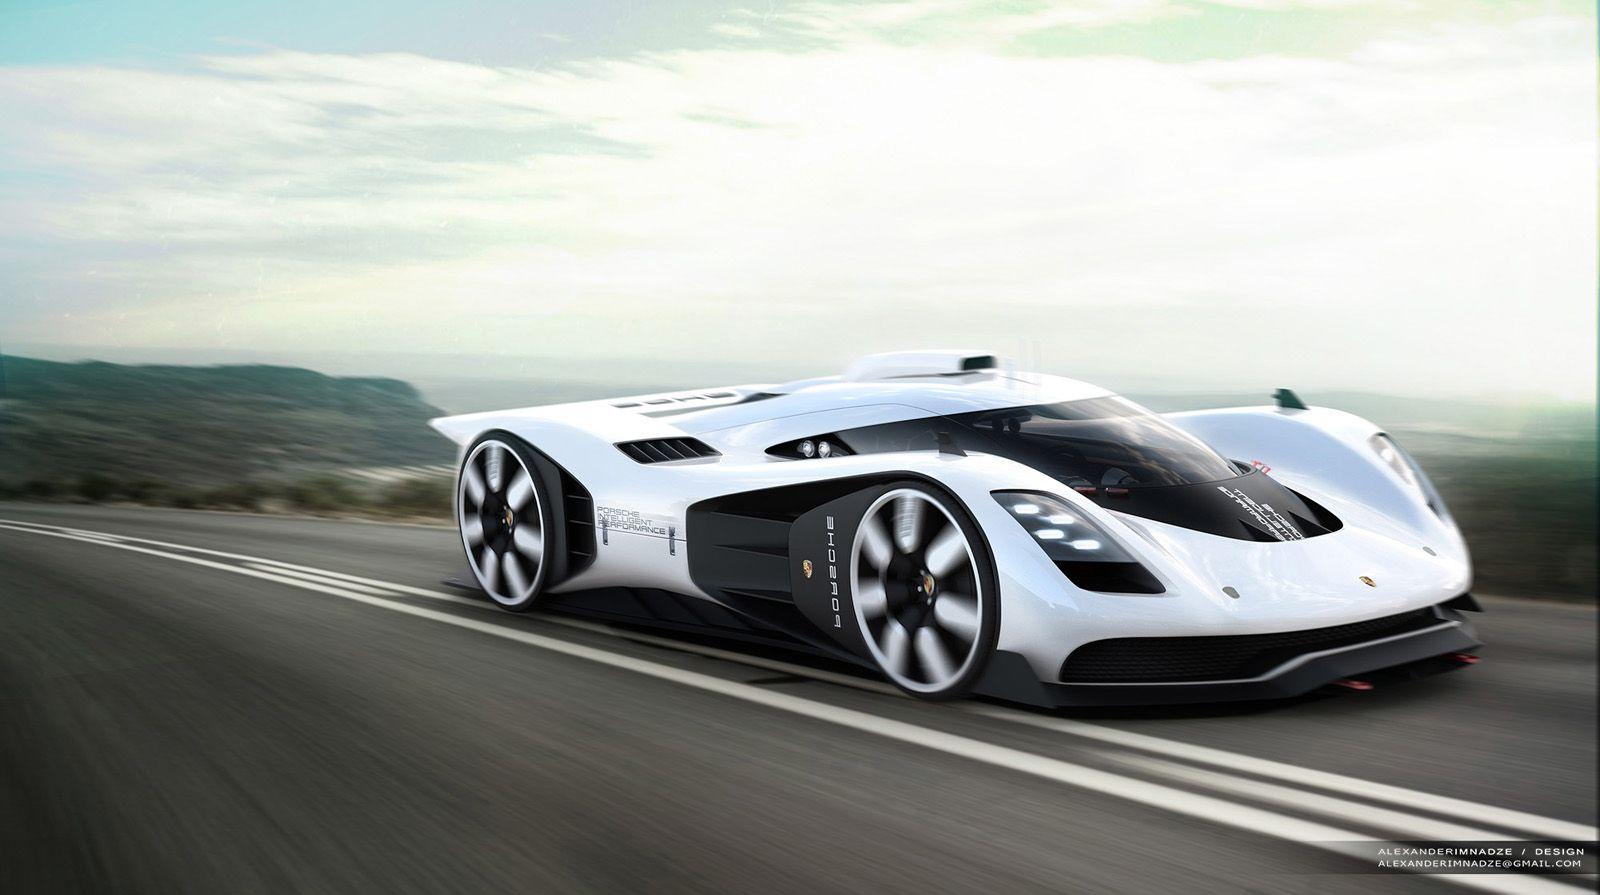 Porsche 906/917 Concept Is One Designer's Stunning Vision For A Future Racer | Carscoops